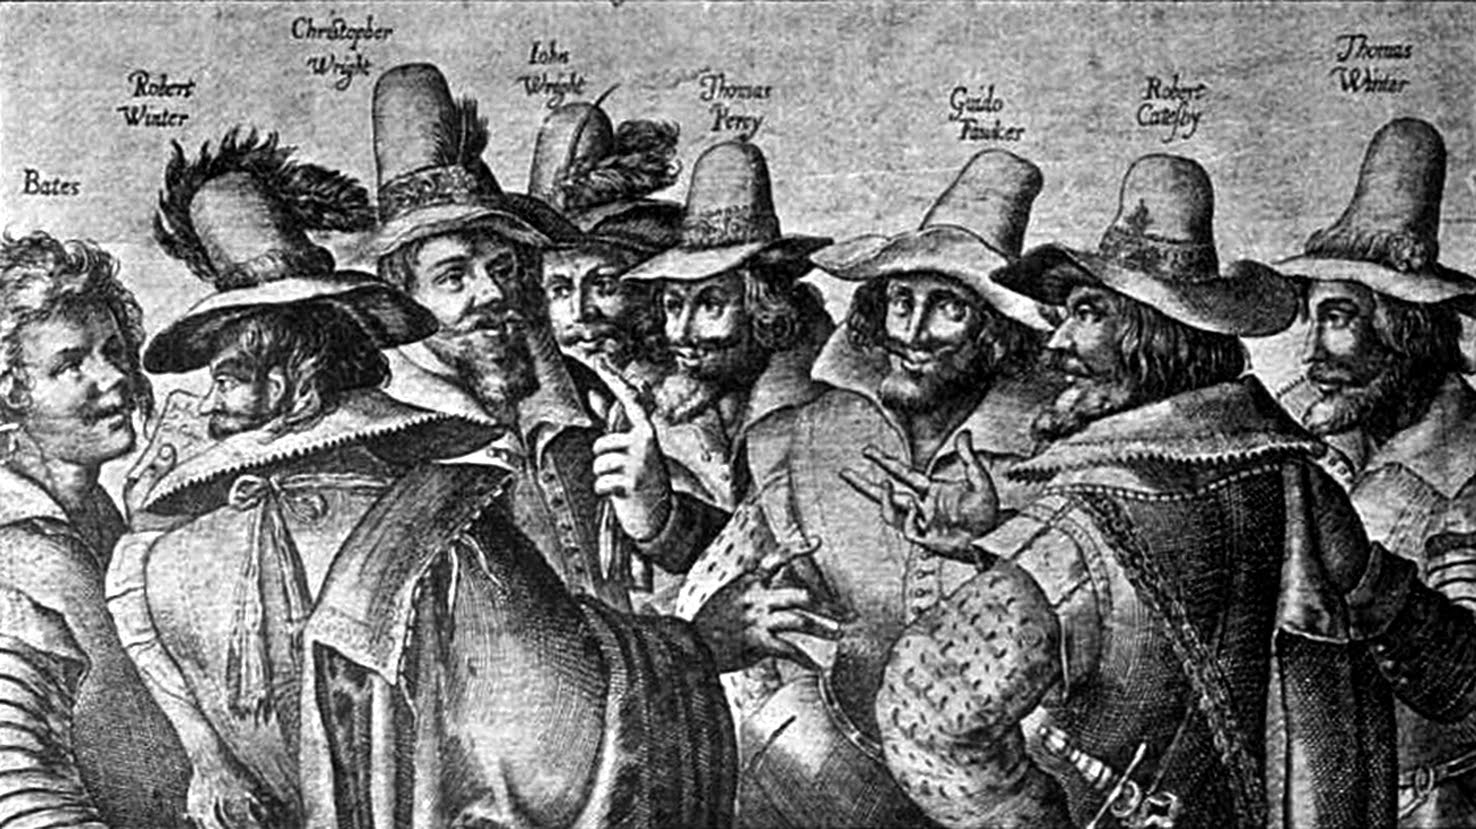 a biography of guy fawkes the conspirator in the gunpowder plot of 1605 Guy fawkes facts & worksheets guy fawkes was one of the english catholics who was responsible for the gunpowder plot in london, 1605 guy fawkes said that 36.